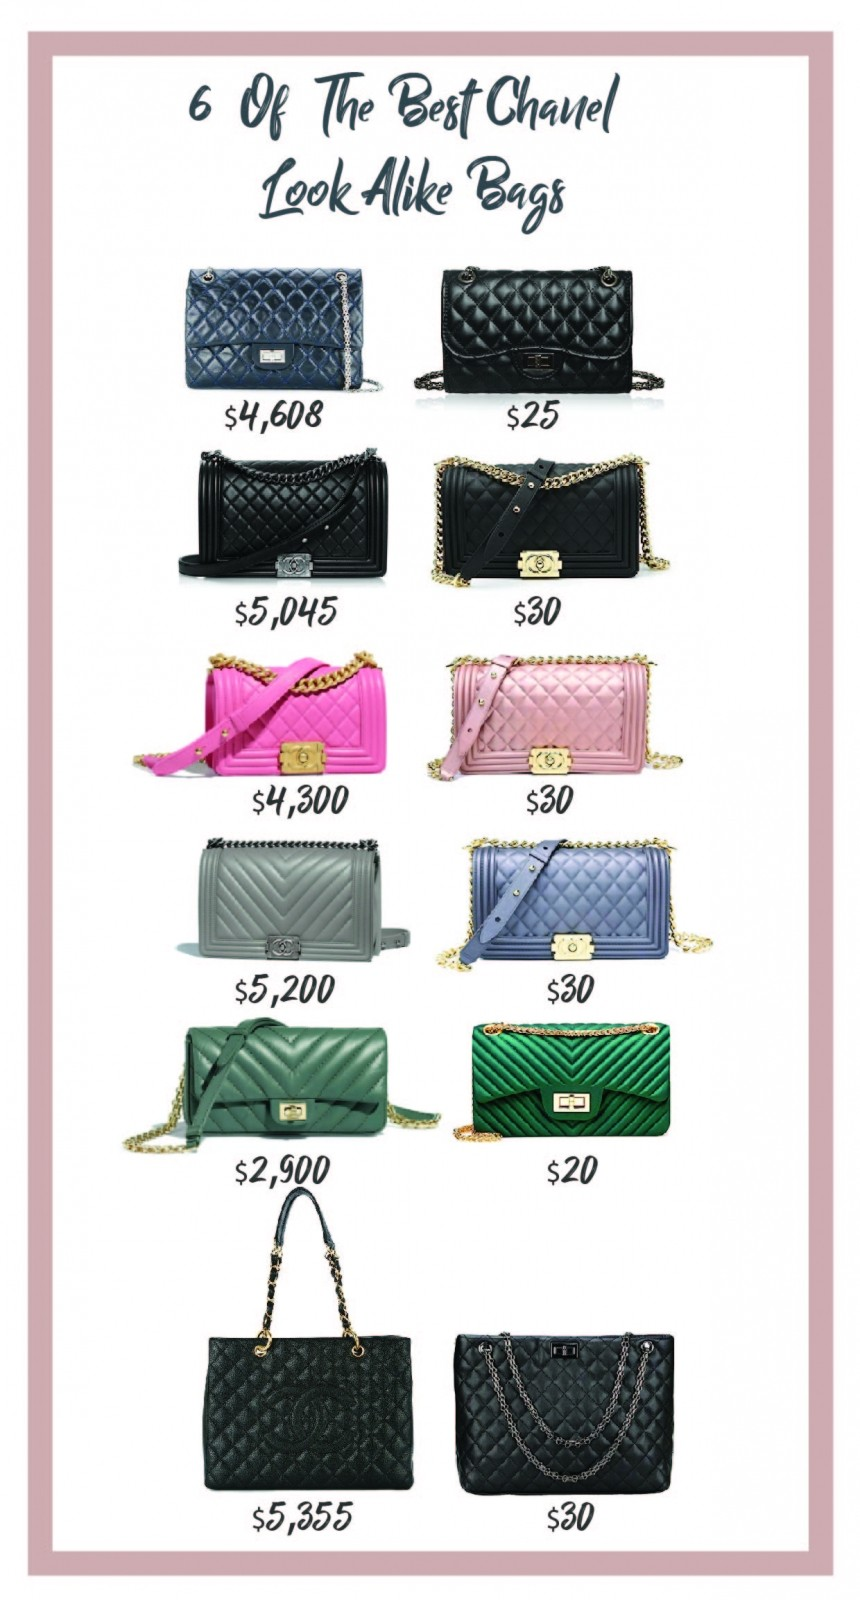 6 Of The Best Chanel Look Alike Bags